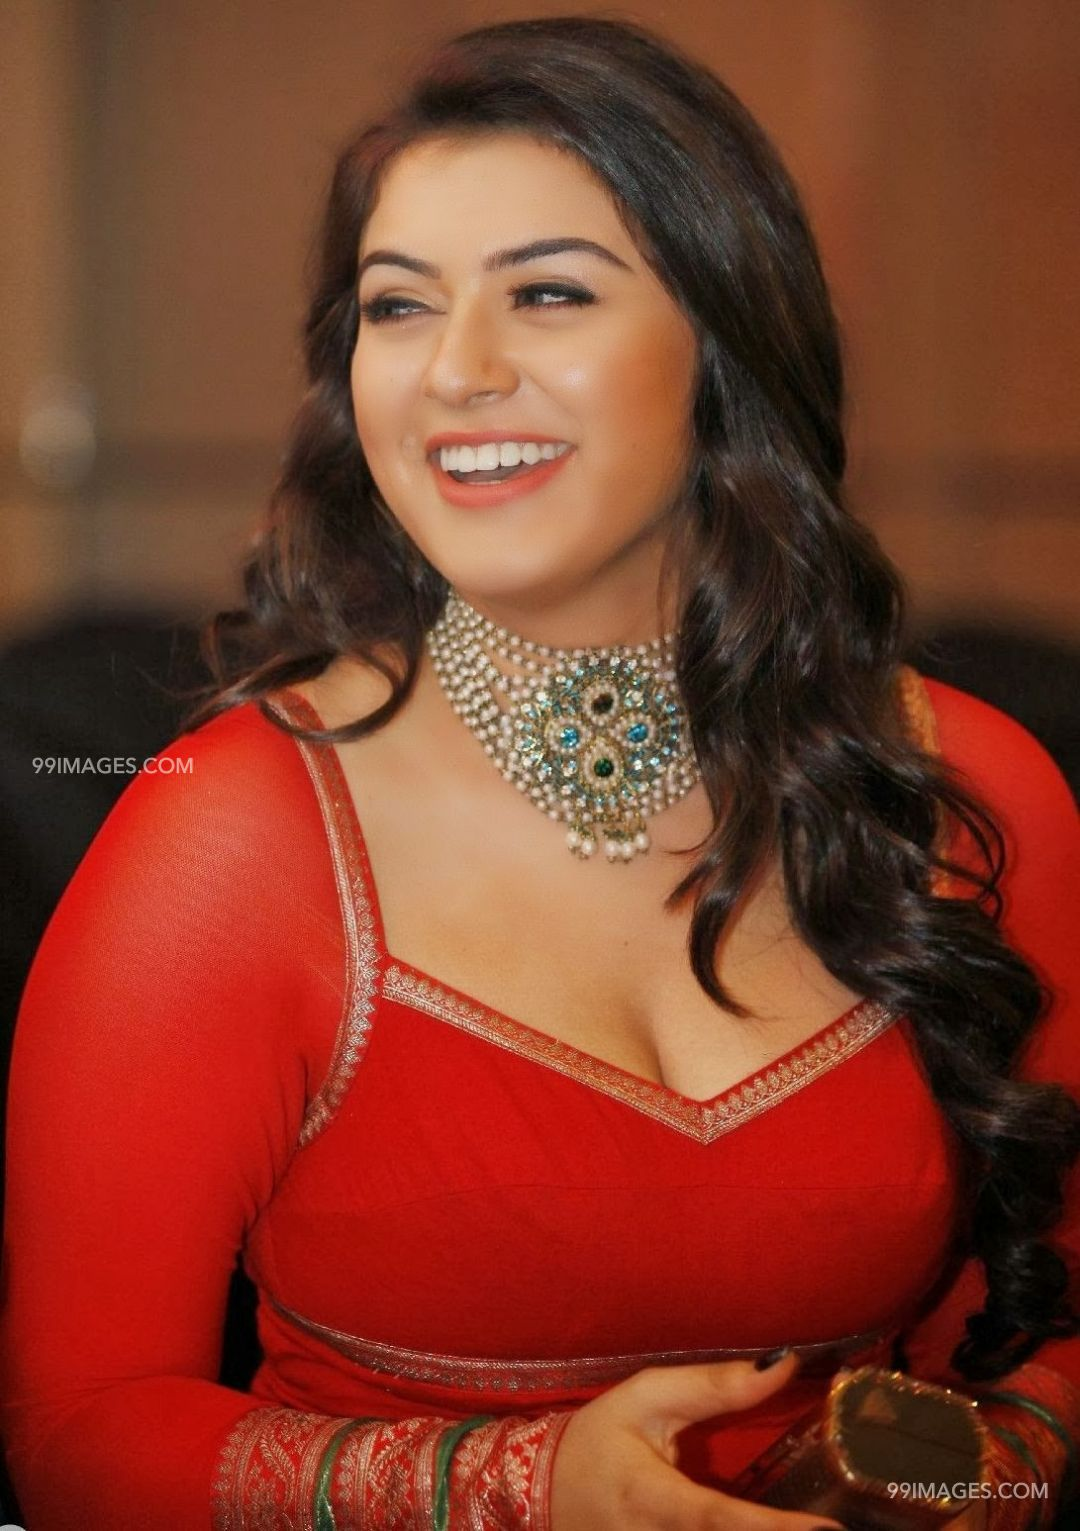 Hansika Motwani Hot Hd Photos 1080p